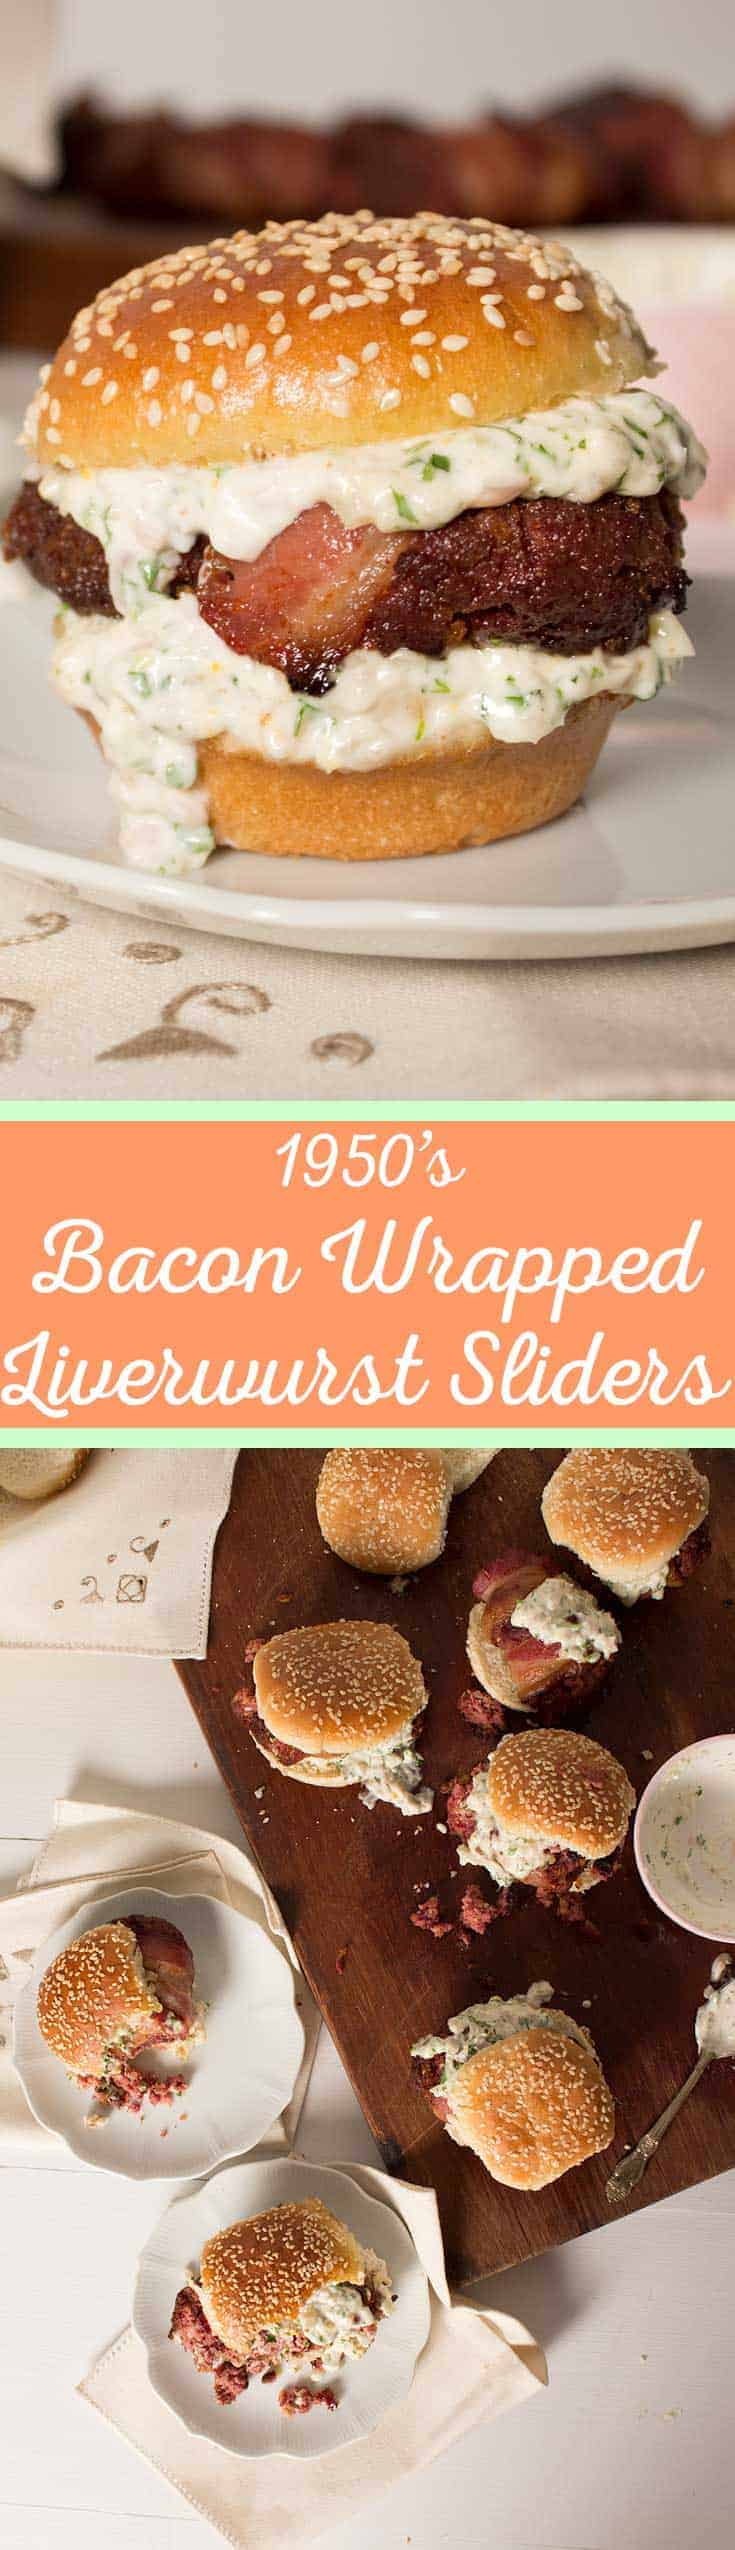 Bacon Wrapped Liverwurst Sliders - Don't let the name scare you! This vintage inspired recipe is a tasty little slider patty made from liverwurst, onion, creamy horseradish and corn flakes. It's a flavor bomb and did I mention it's wrapped in bacon...what more could you ask for! #vintagerecipe